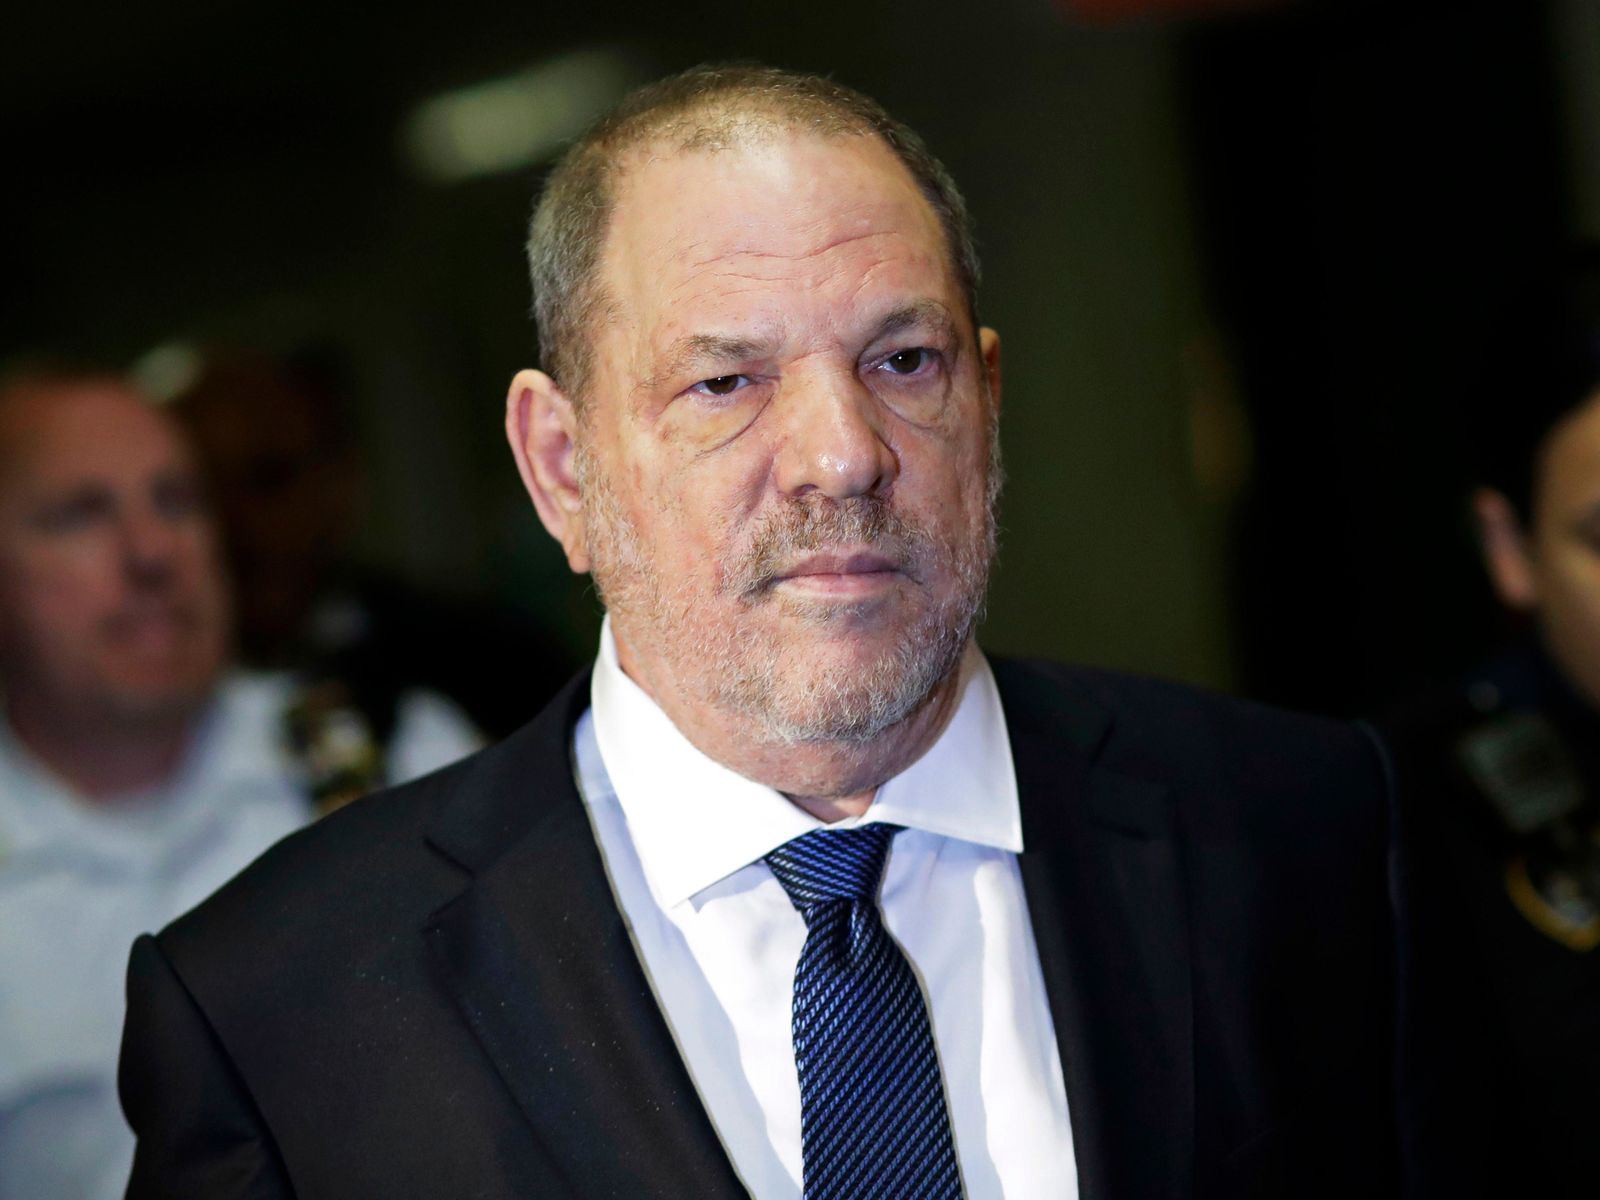 FILE - In this Oct. 11, 2018 file photo, Harvey Weinstein enters State Supreme Court in New York.{ } (AP Photo/Mark Lennihan, File)